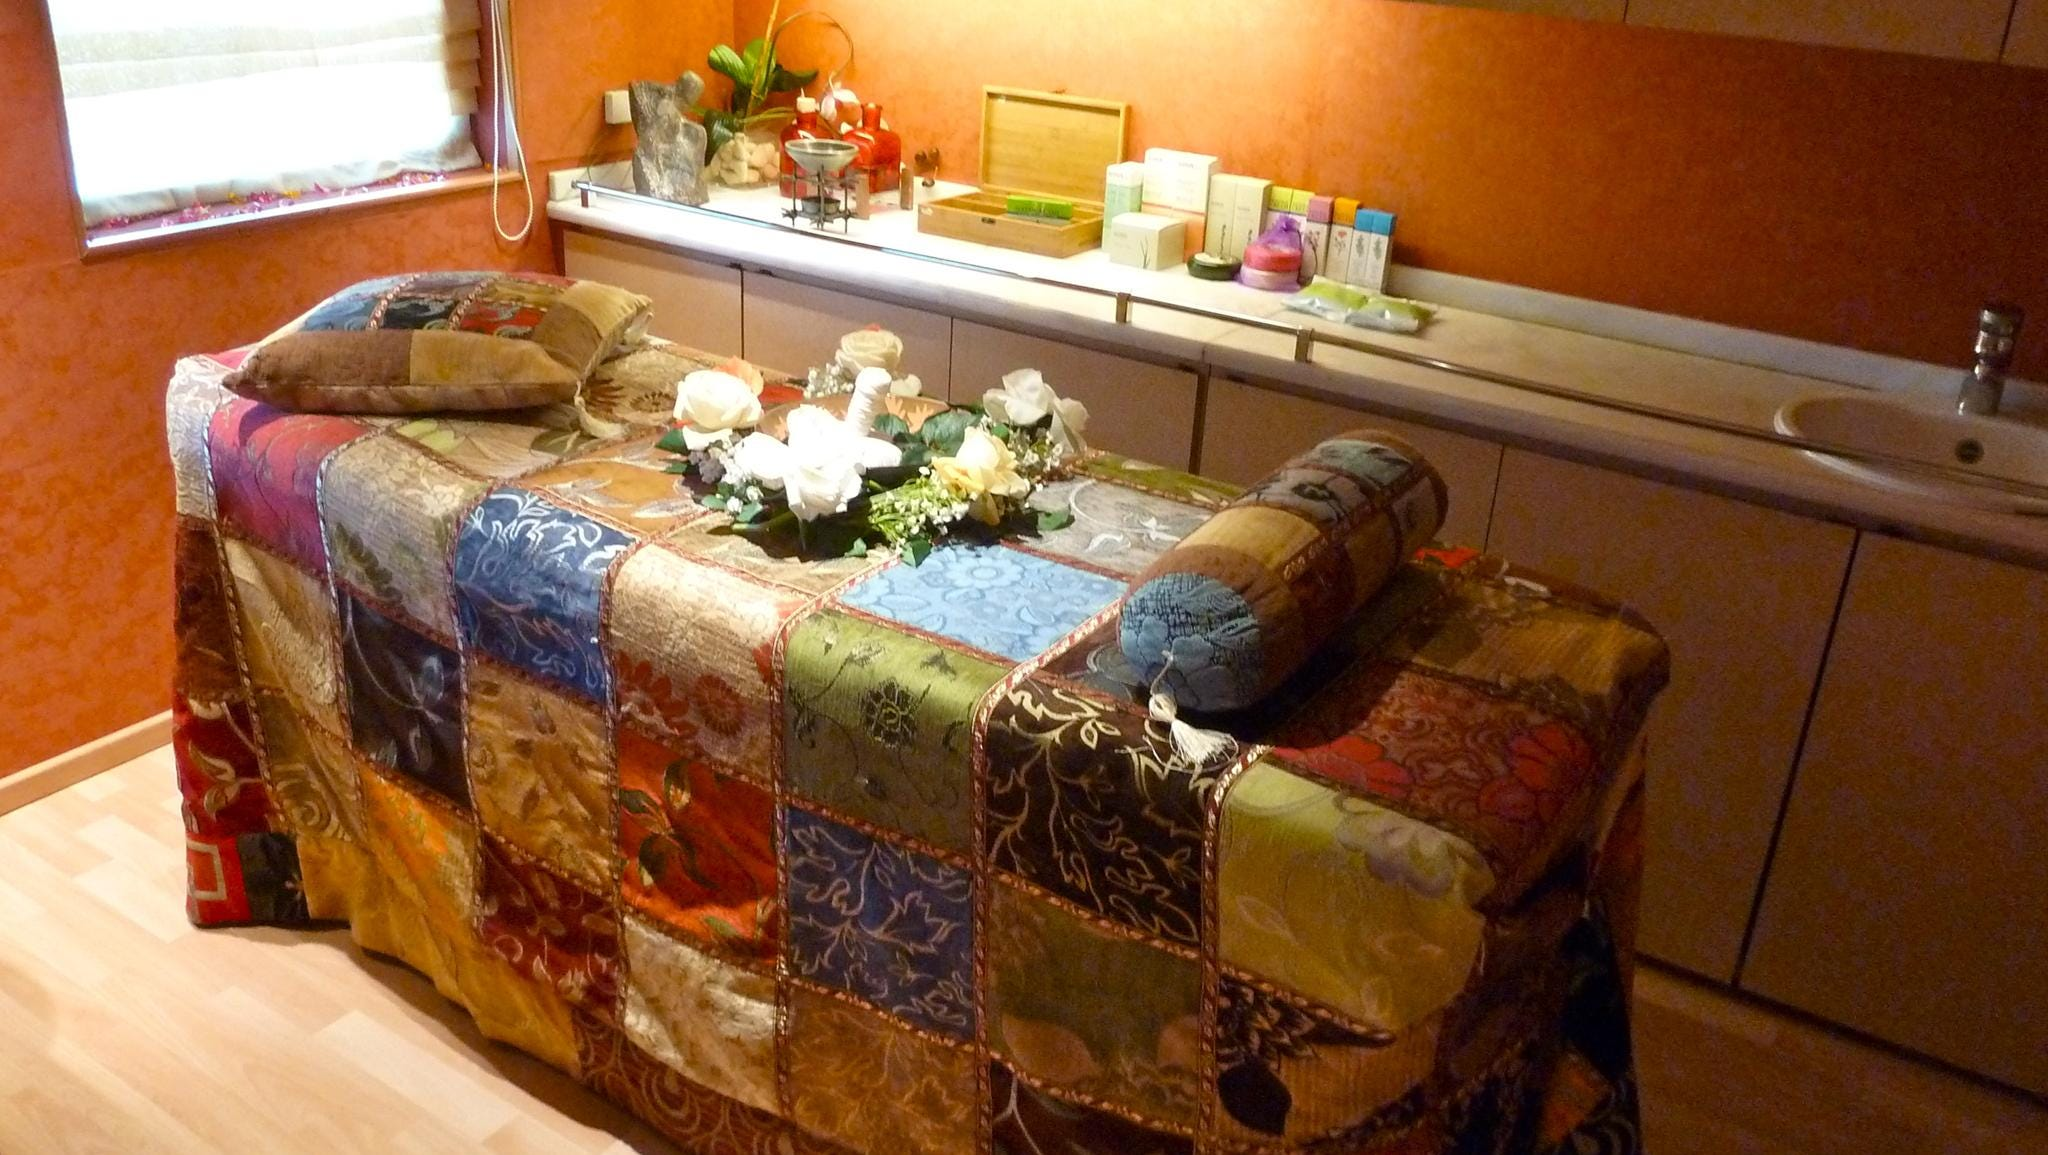 Several treatment rooms in the Jade Wellness Center are the setting for a wide variety of massages and skin therapies.